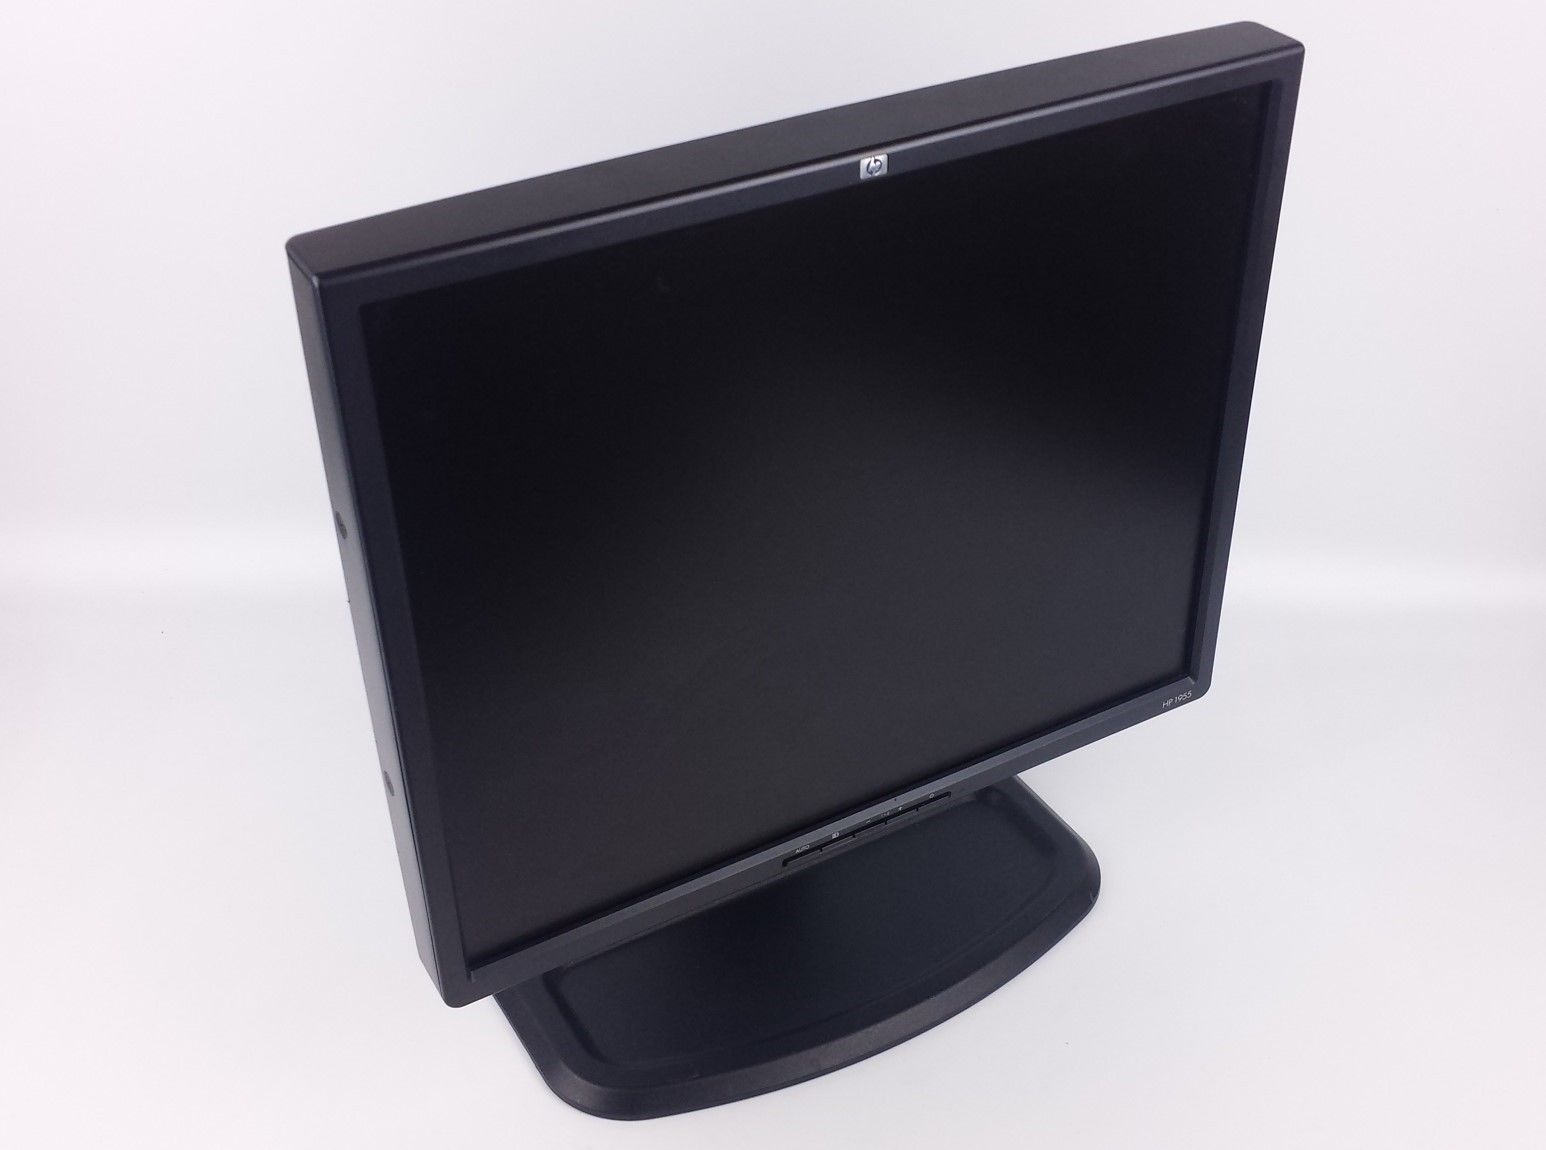 "HP 1955 Flat Panel LCD Computer Monitor 19"" PD974A 366715-601 396885-001"